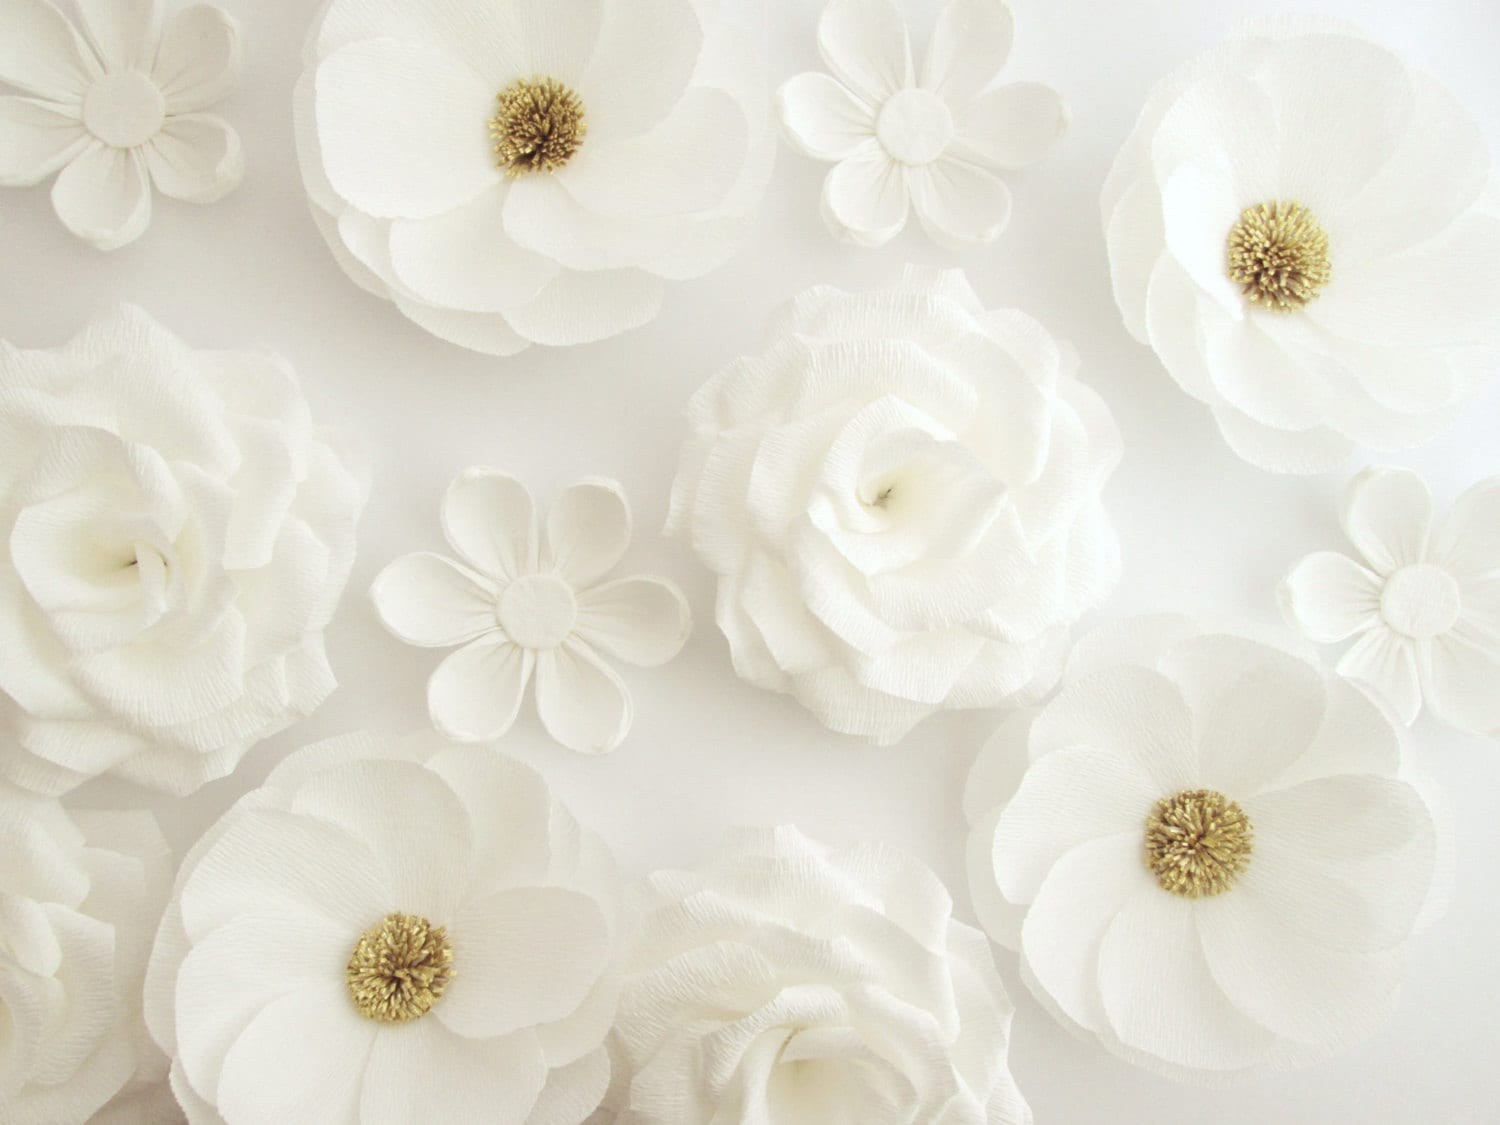 12 paper flowers wall flowers arch flowers wedding zoom mightylinksfo